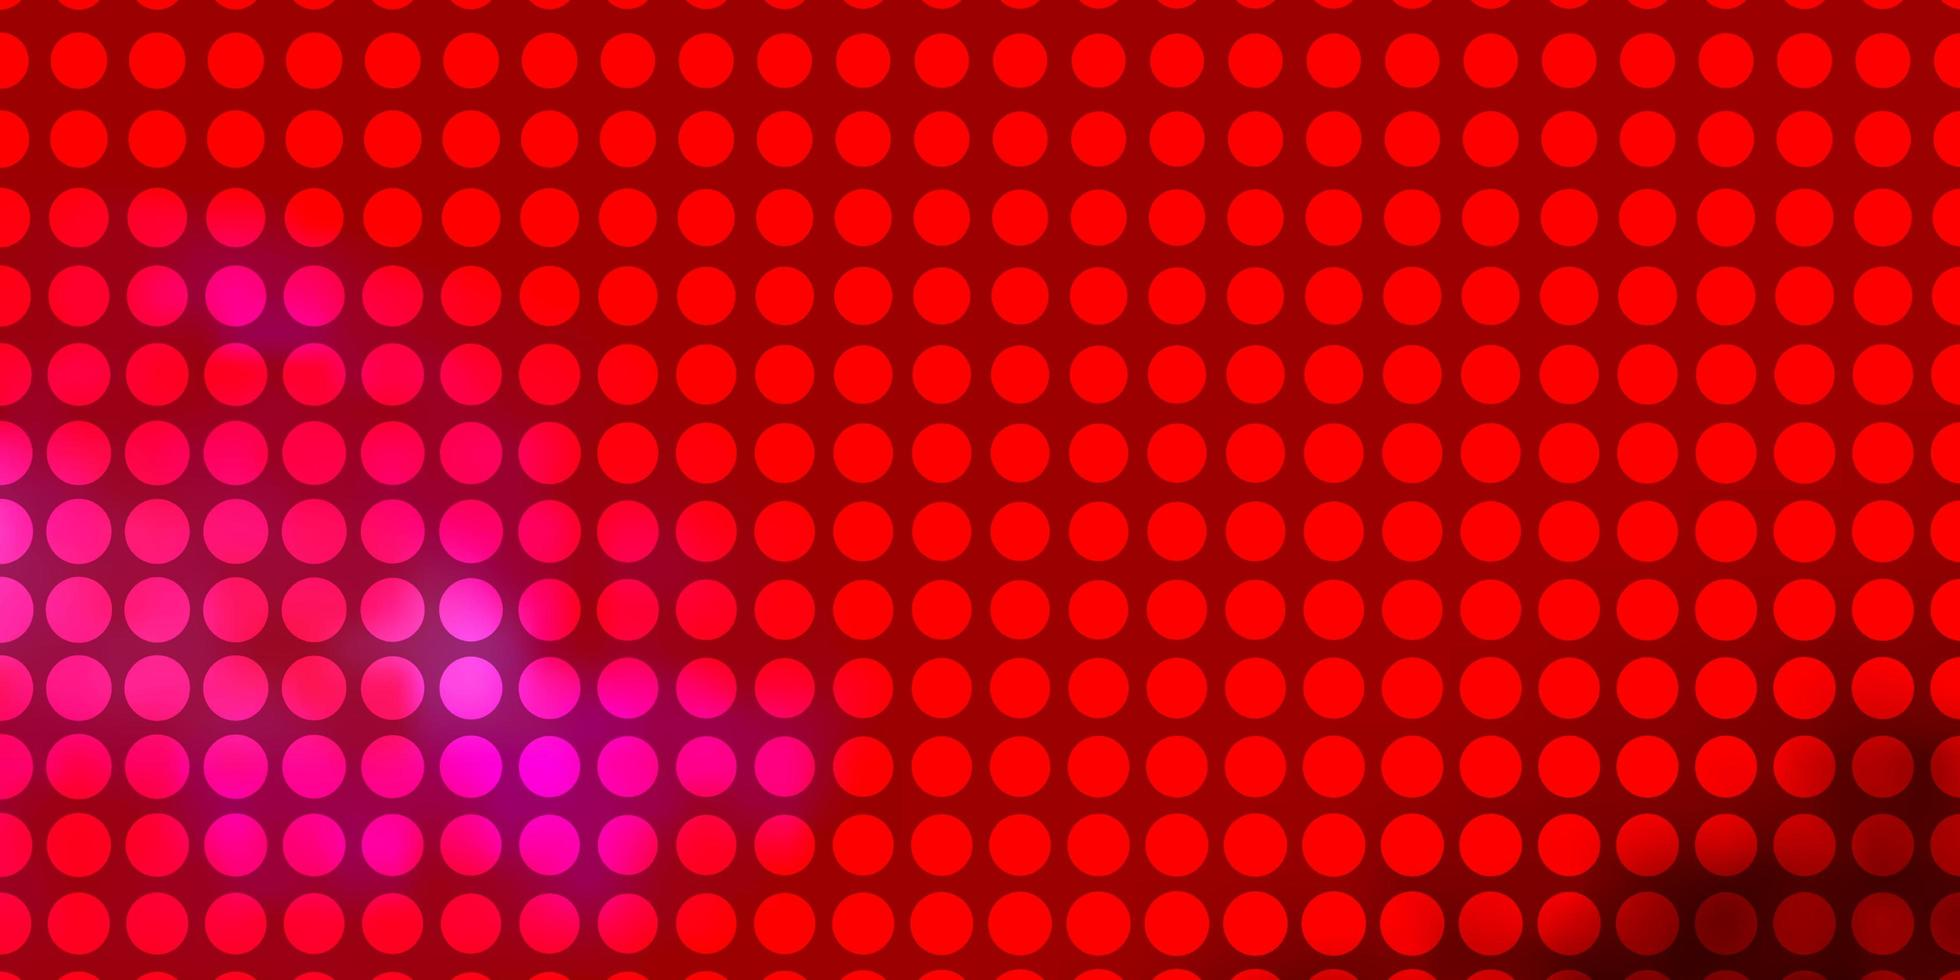 Light Red vector texture with circles.